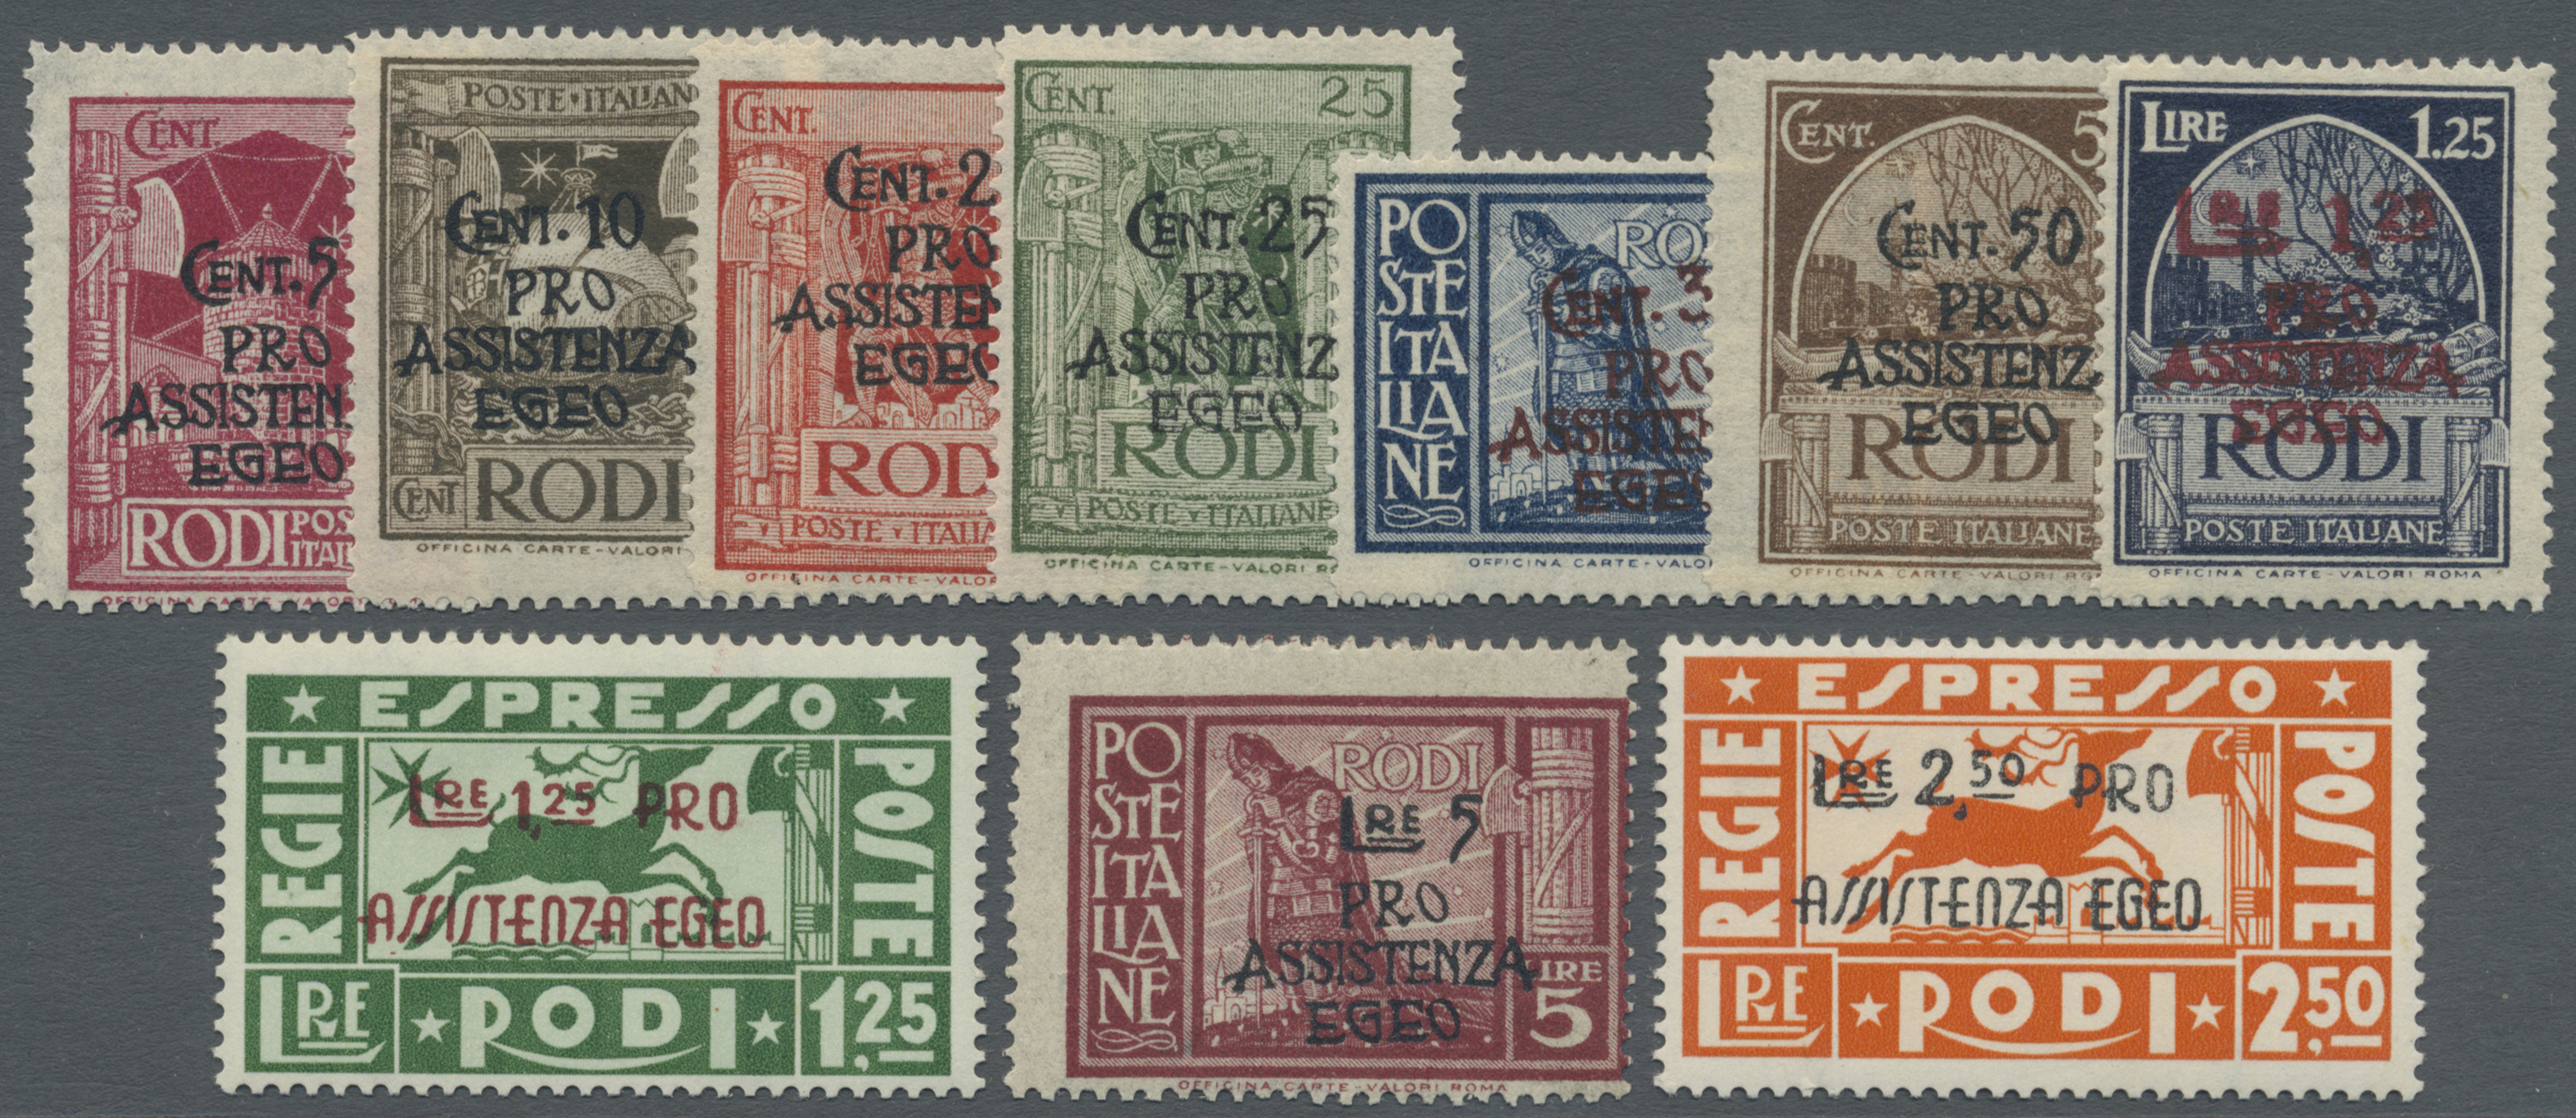 01 Stripe Of 3 Used Stamps Afghanistan